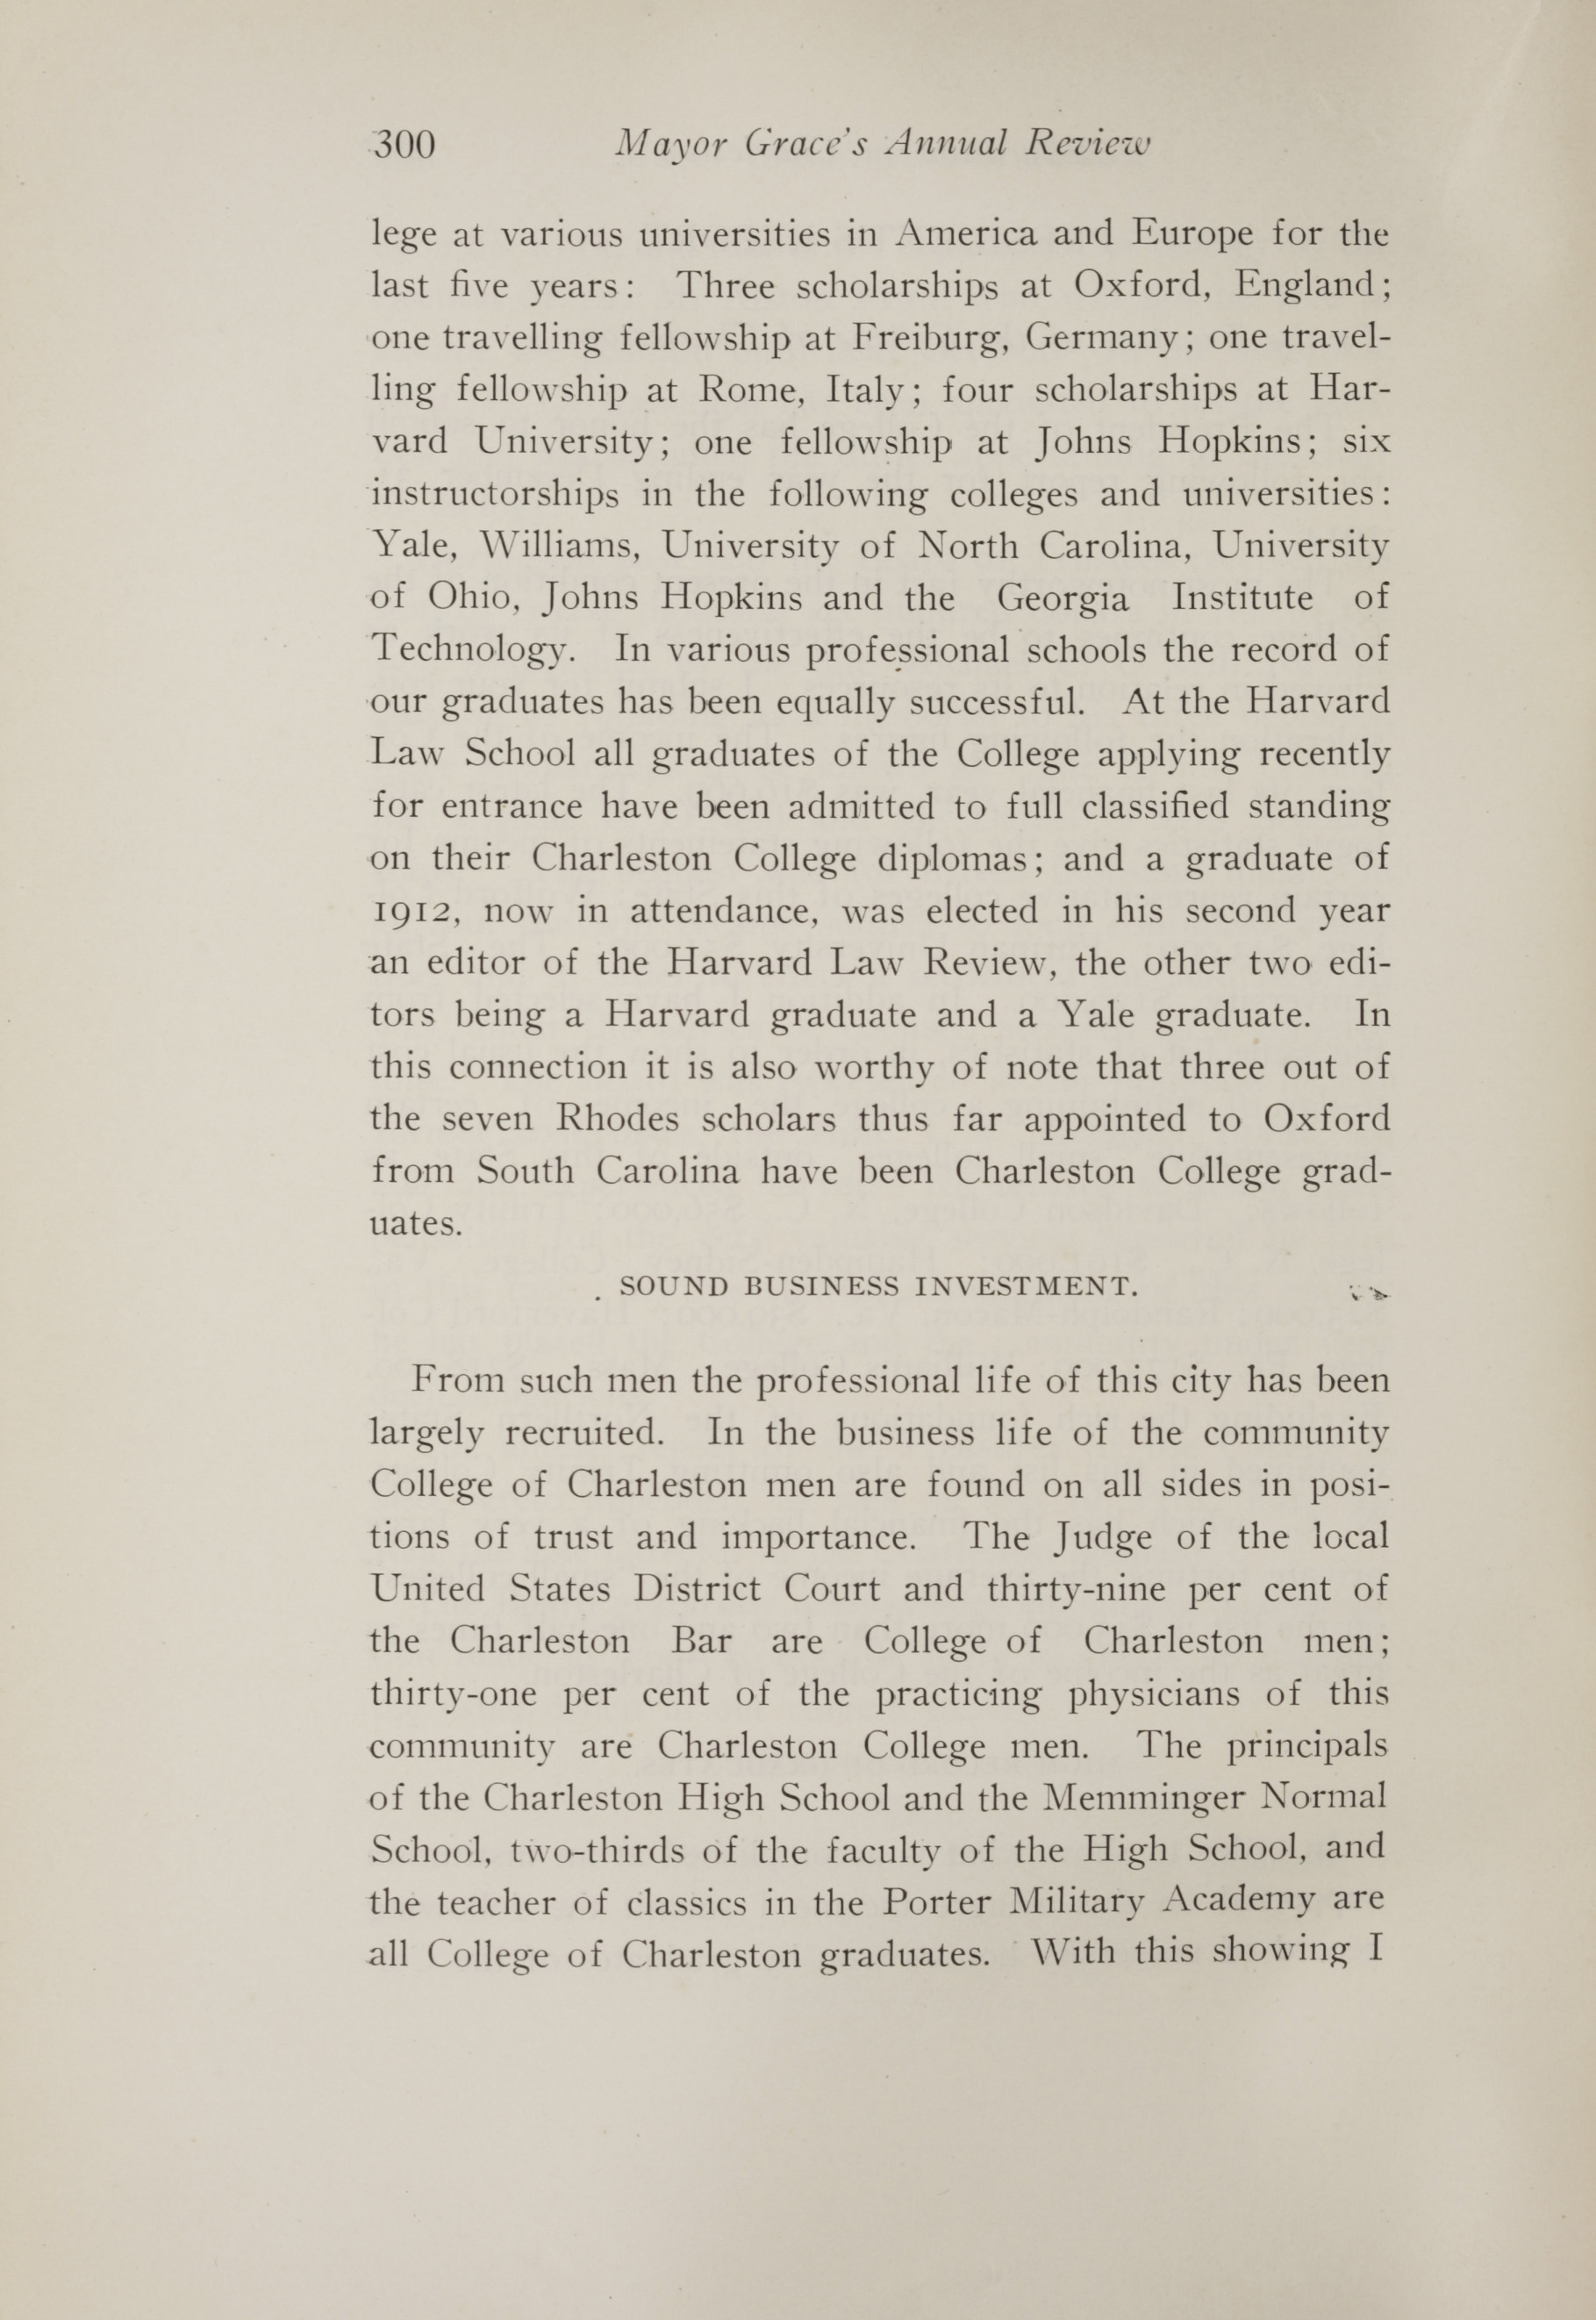 Charleston Yearbook, 1914, page 300